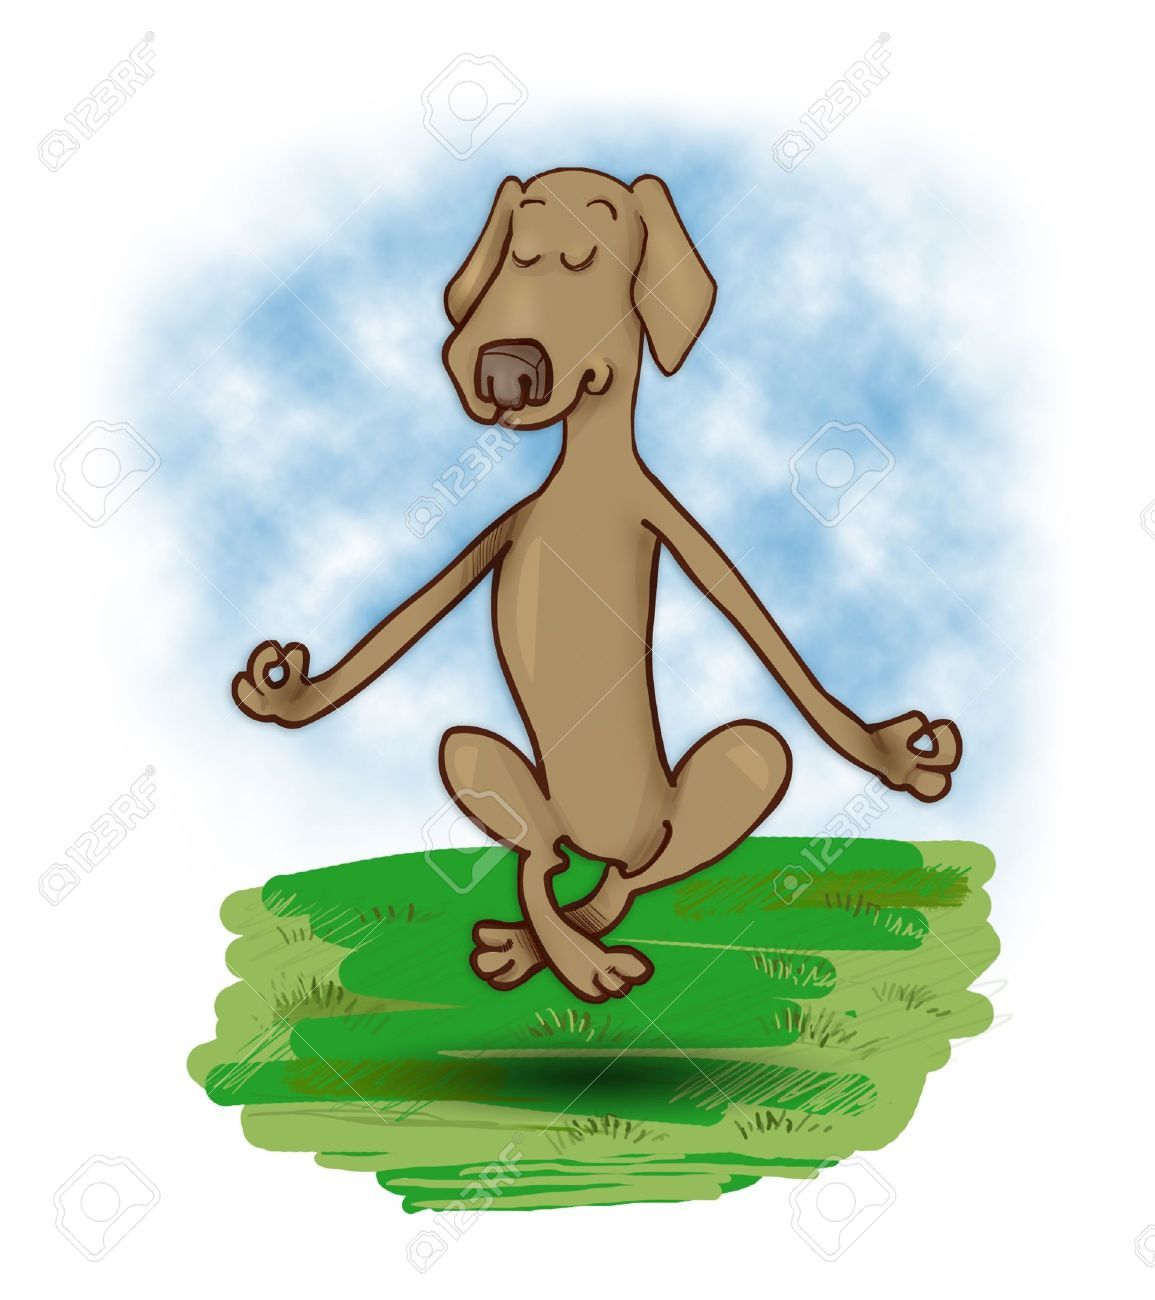 humorous illustration of meditating and levitating dog Stock Illustration - 9274992